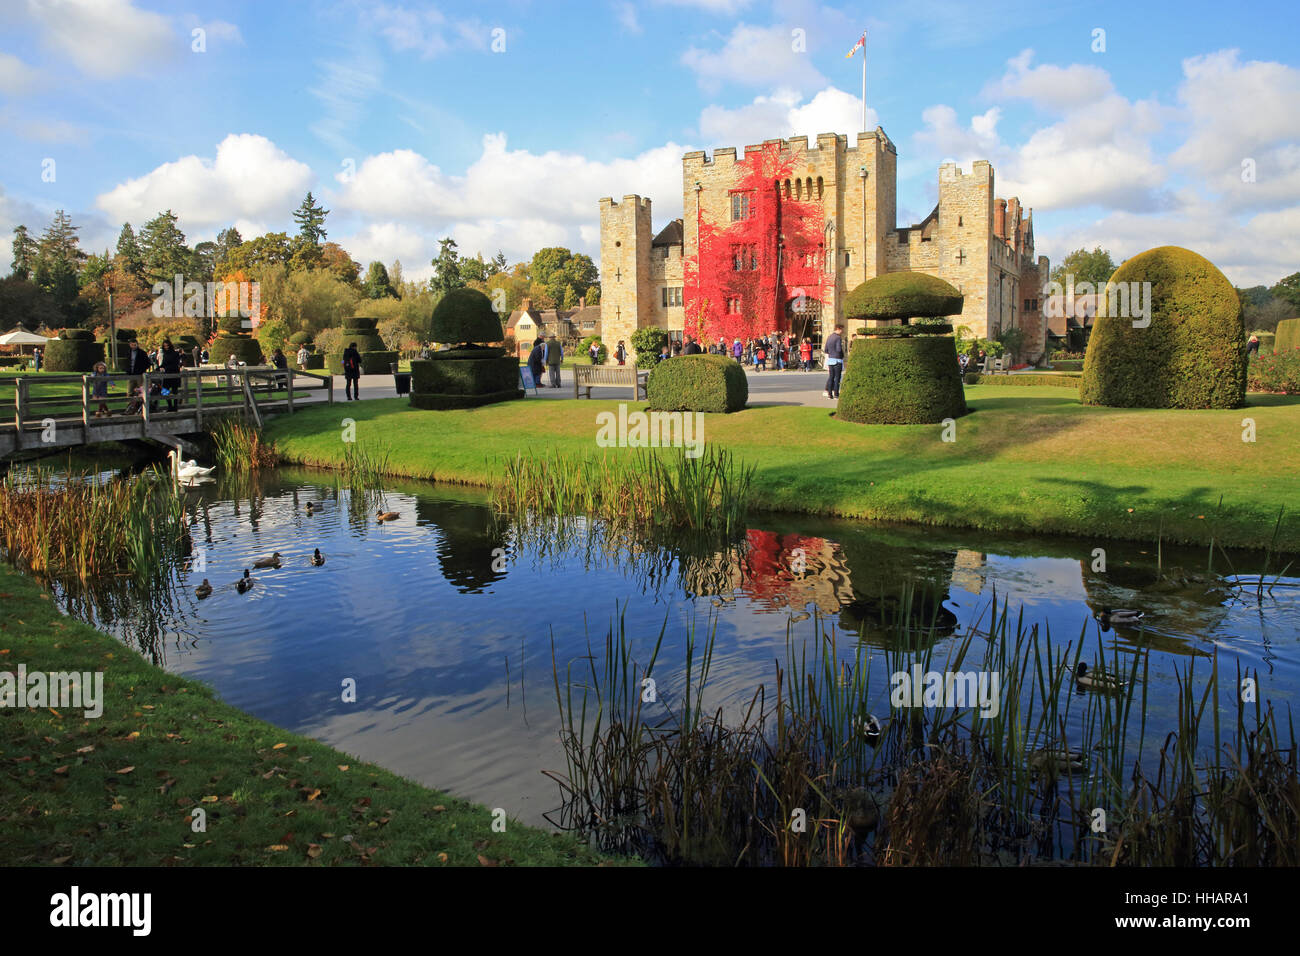 Henry VIII's 2nd wife, Anne Boleyn's childhood hone, Hever Castle, in the Kent countryside, in England, - Stock Image